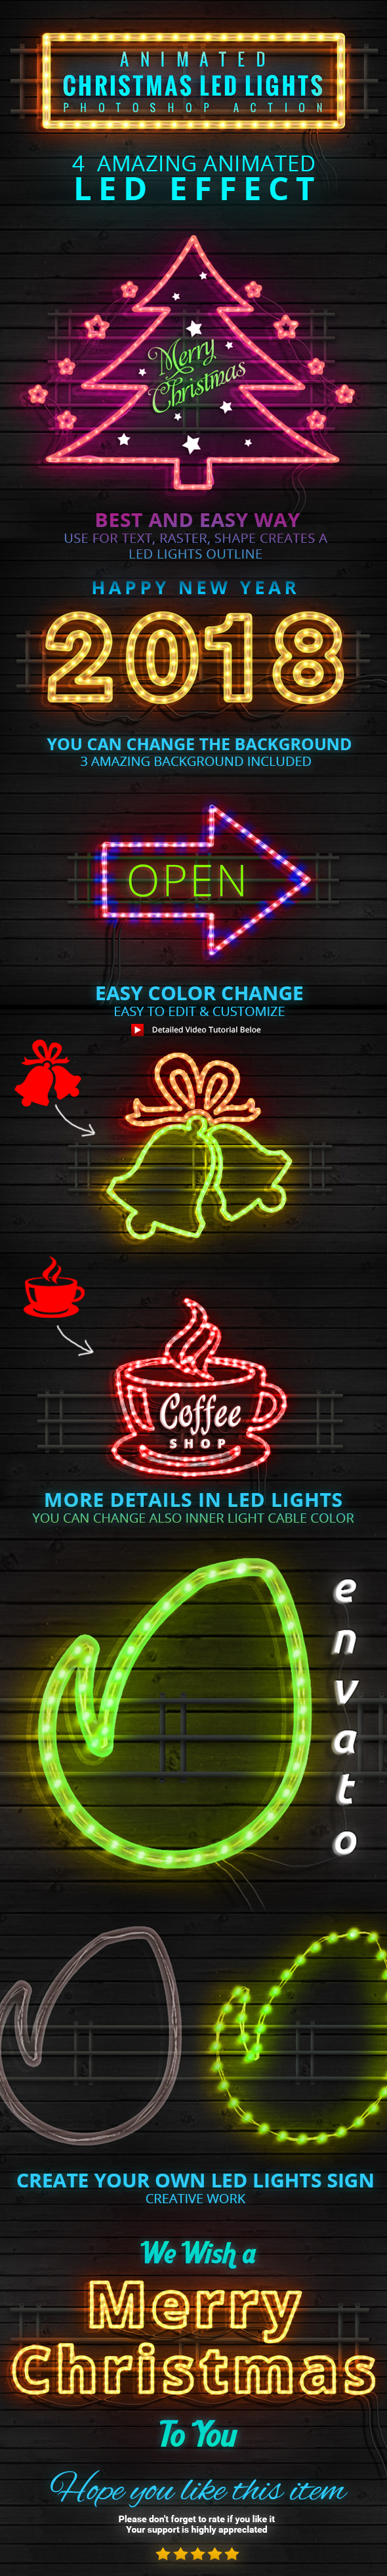 Animated Christmas LED Lights Rope Action - Actions Photoshop